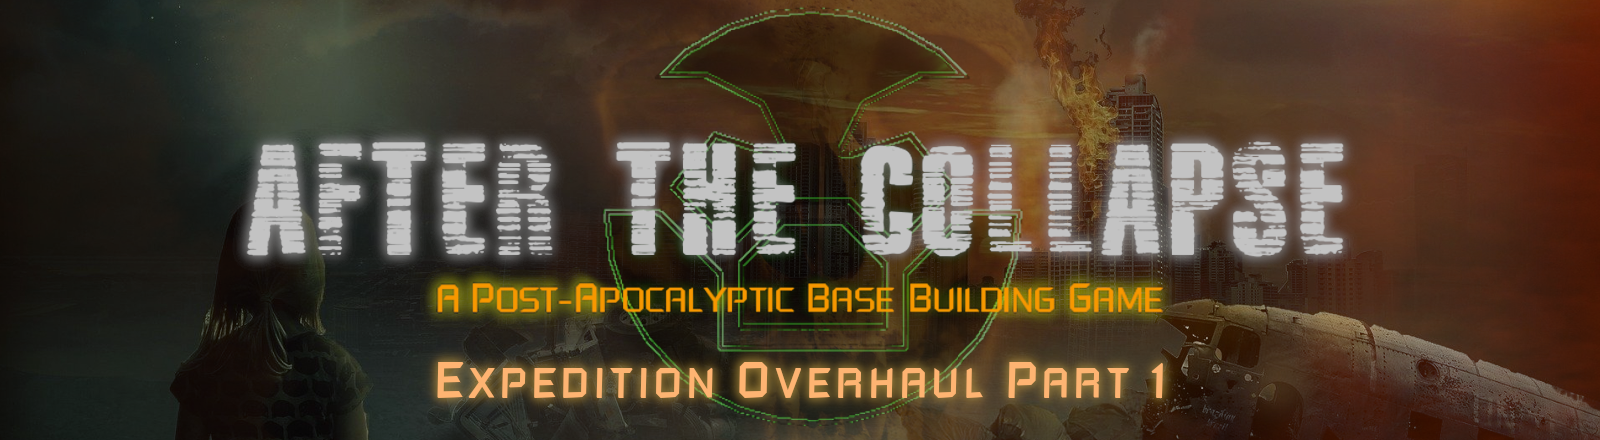 After The Collapse 0.8.3: Expedition Overhaul Part 1